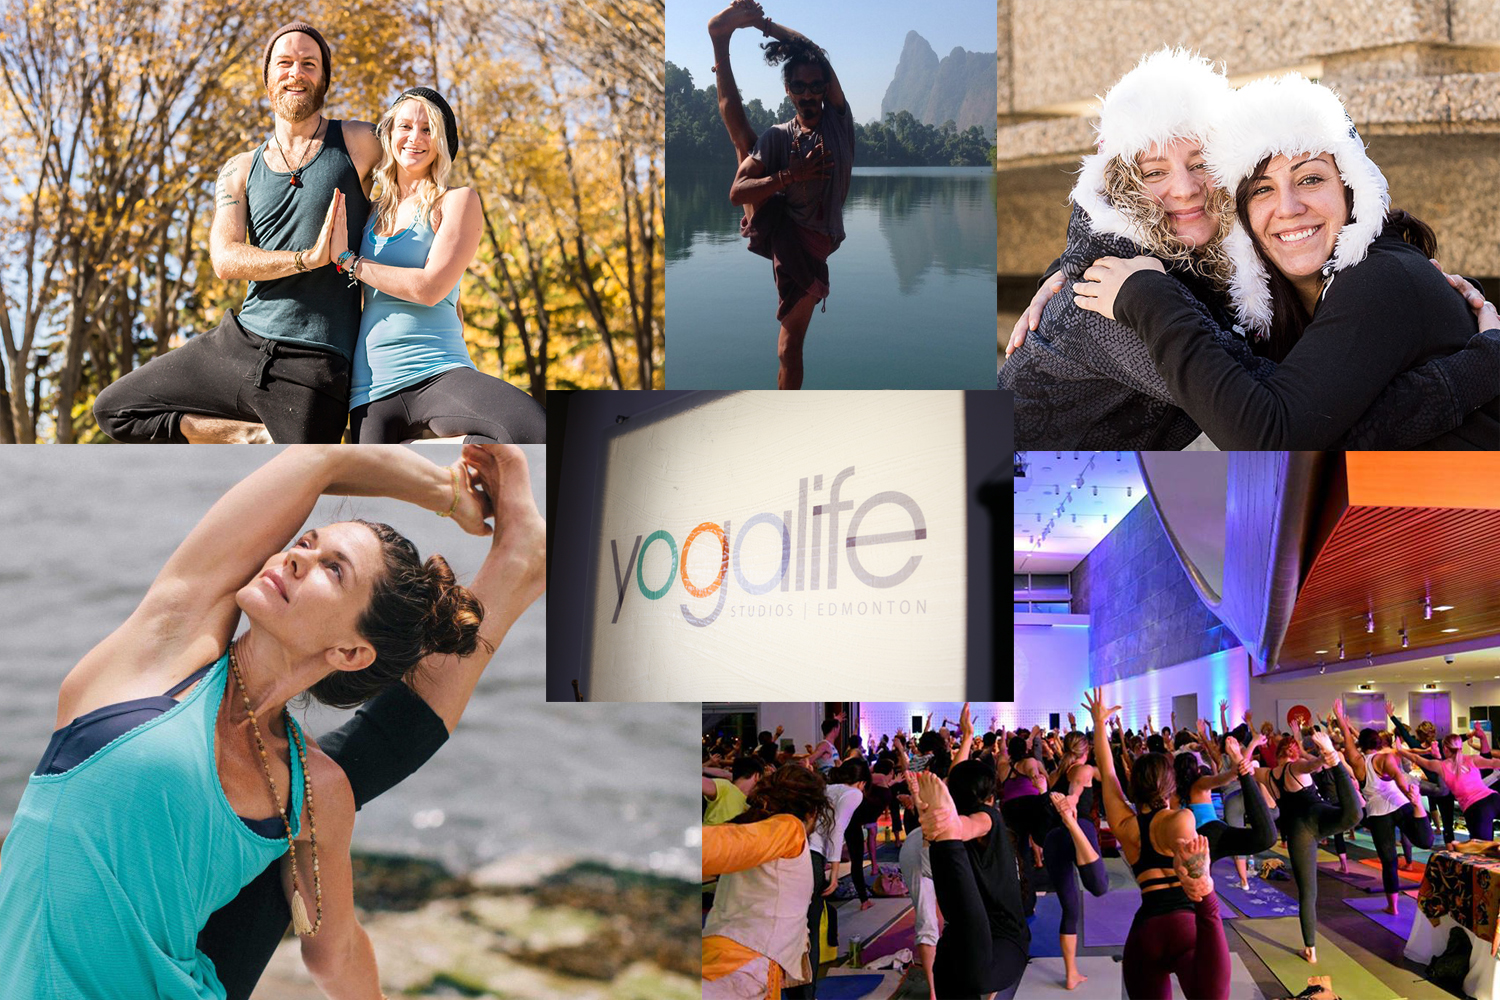 Happy New Year from the Yogalife family!